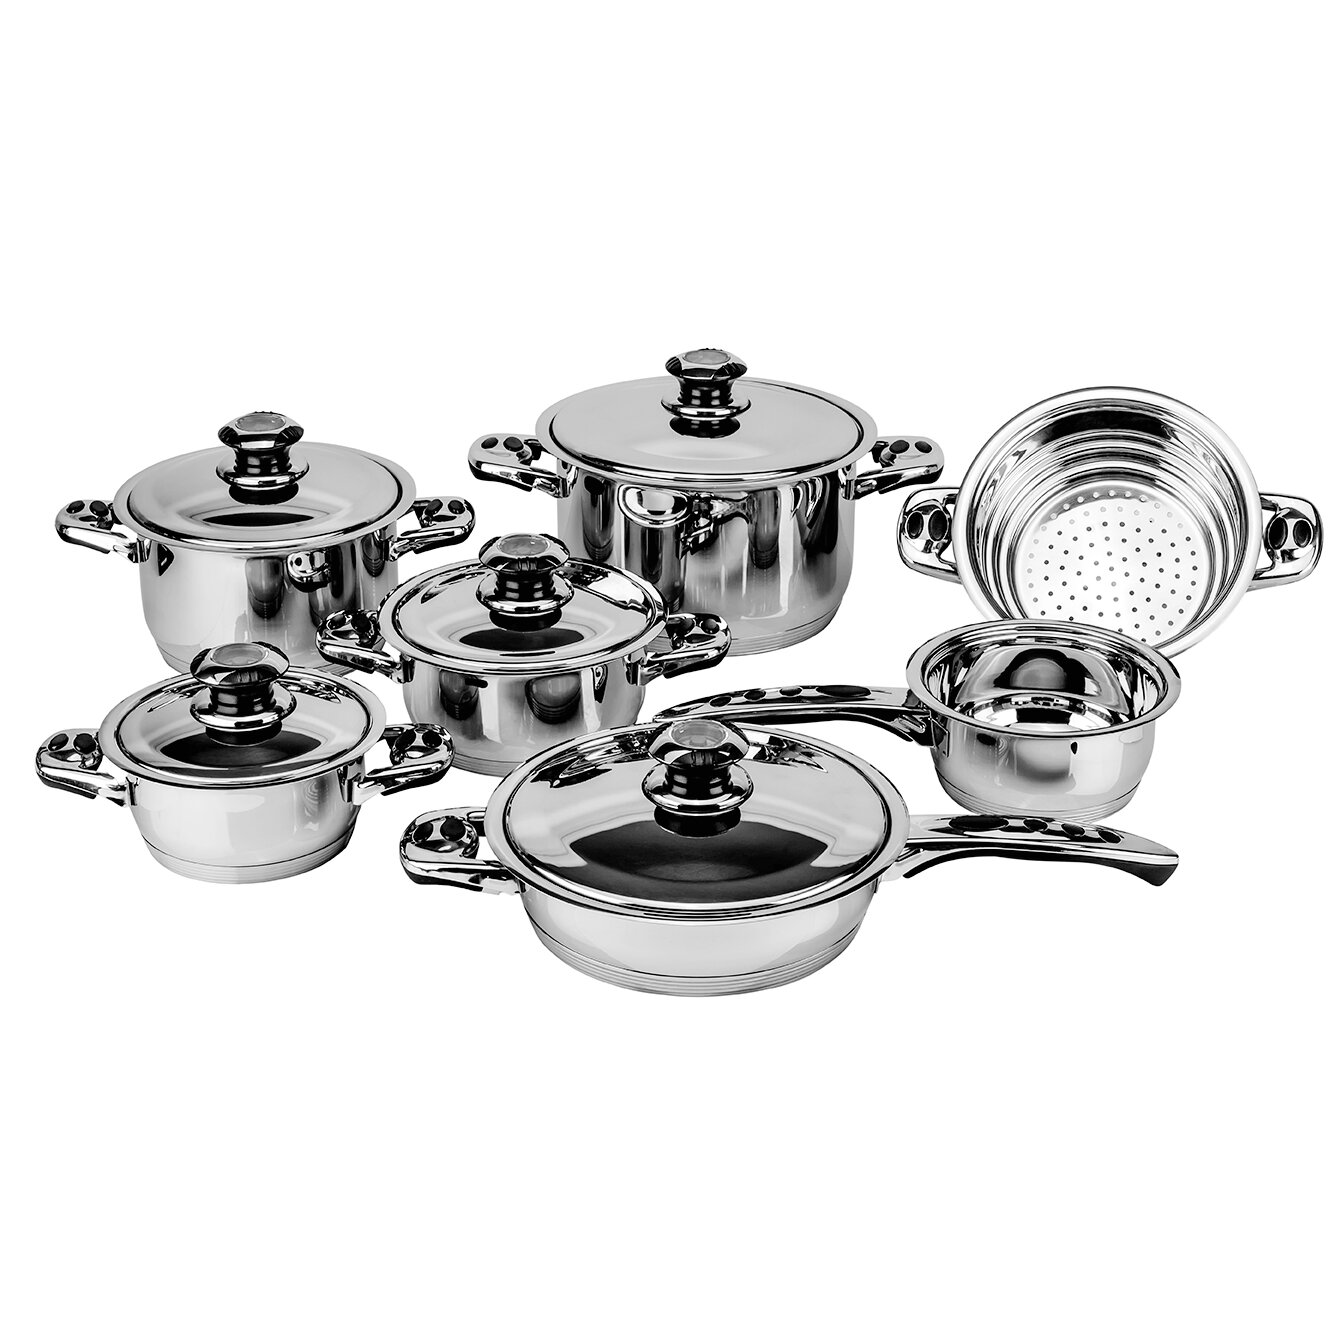 Magefesa Ecotherm Stainless Steel 12 Piece Cookware Set